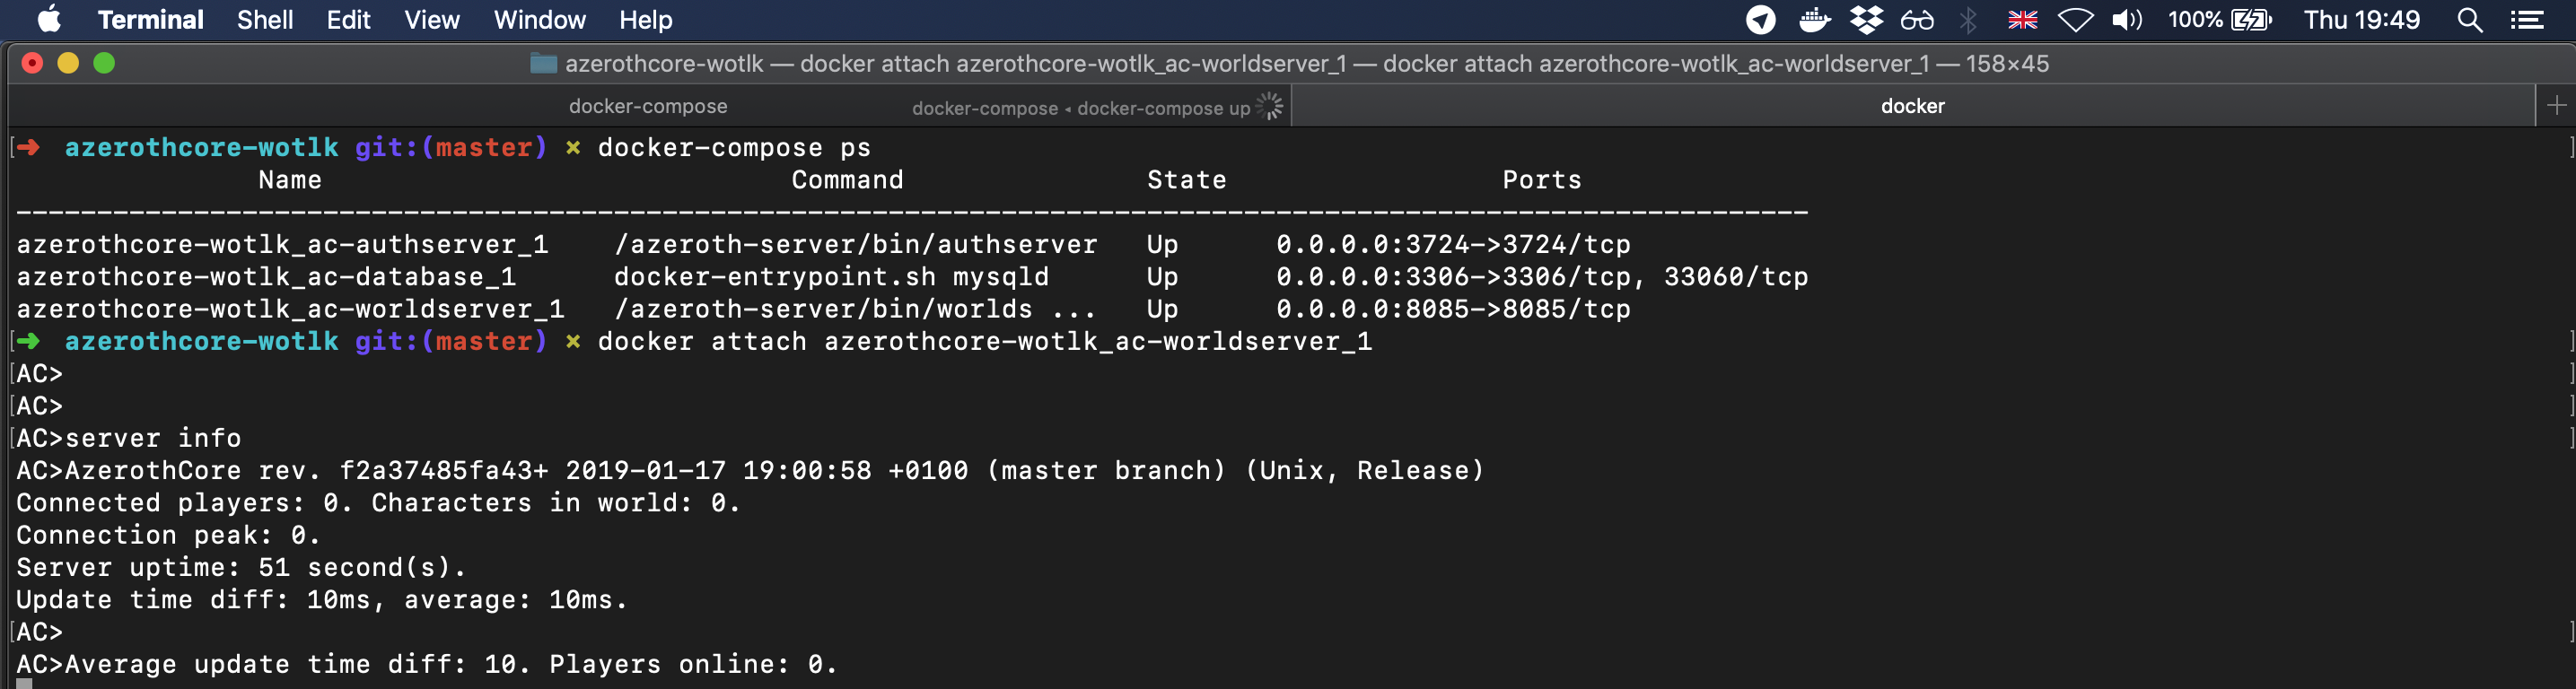 AzerothCore on macOS using Docker